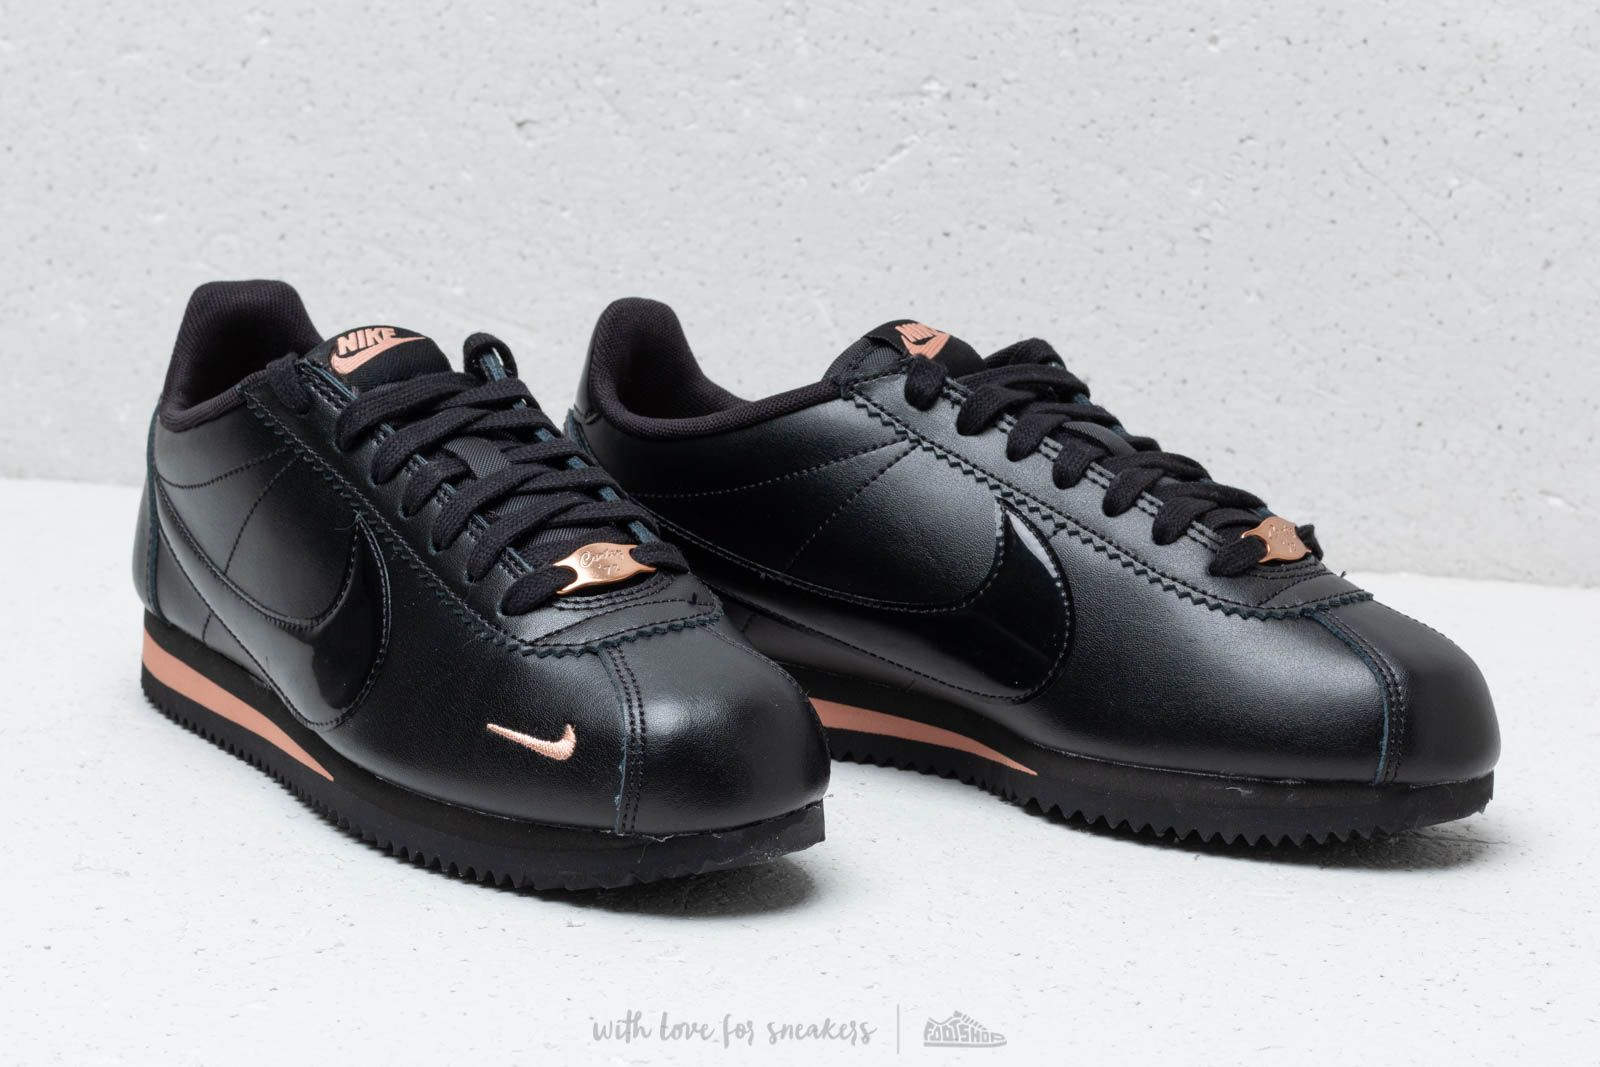 the best attitude 6efda c0332 Nike Wmns Classic Cortez Prem Black/ Black-Rose Gold | Footshop